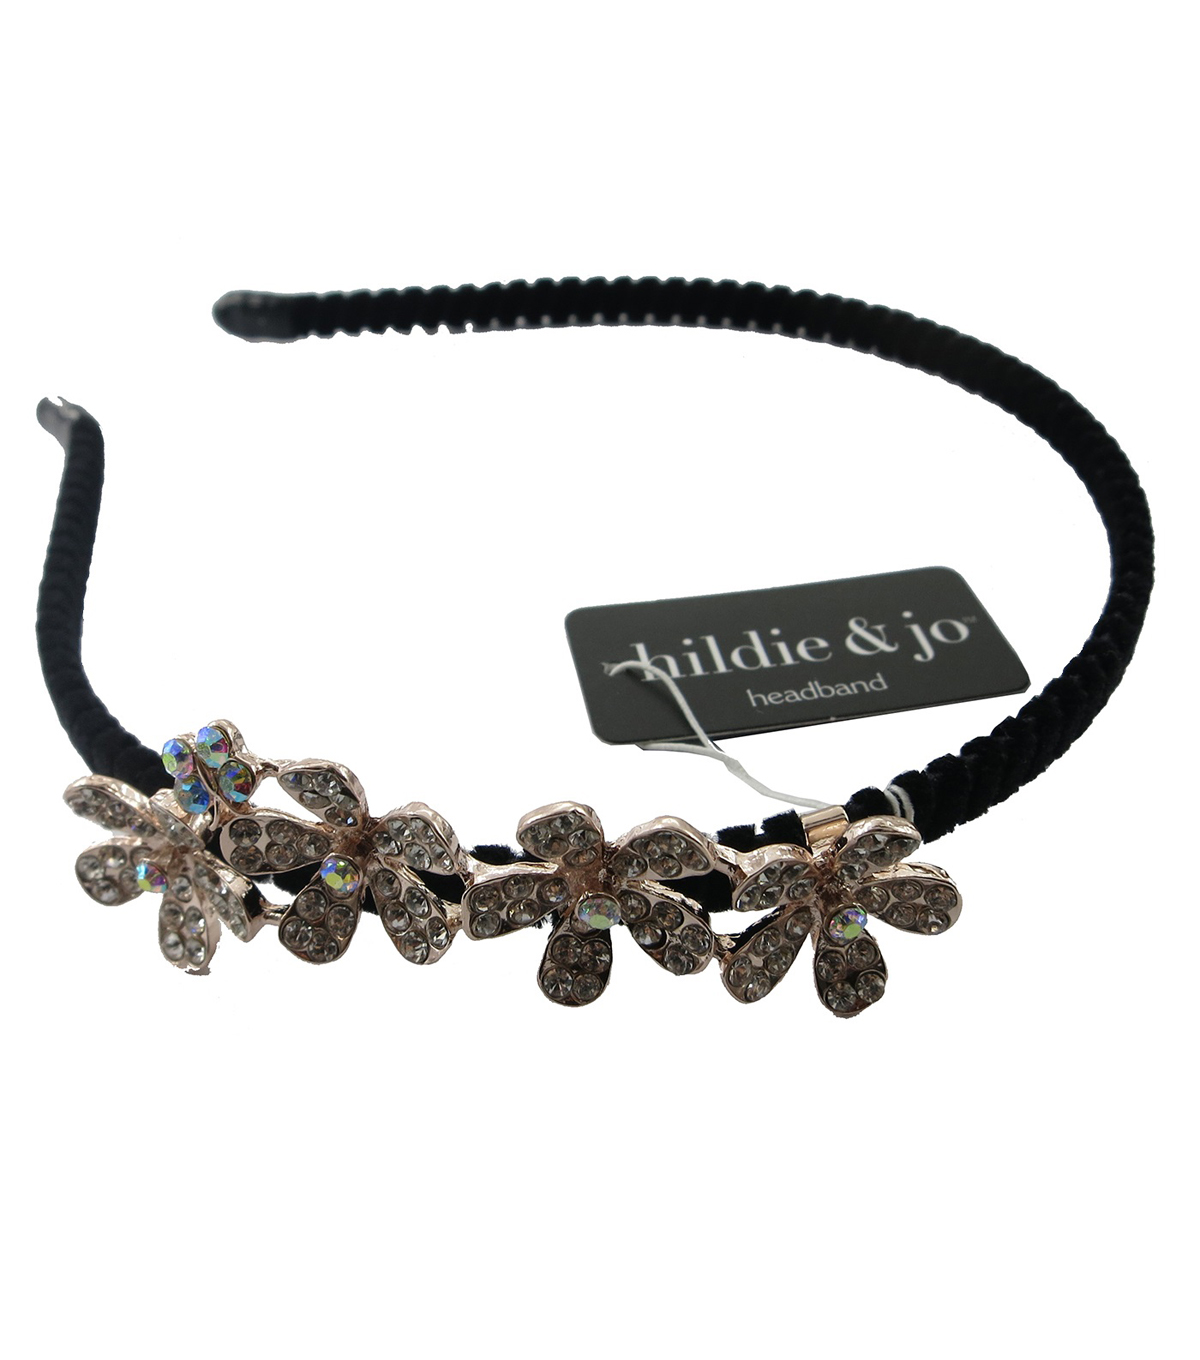 hildie & jo Black Headband with Flowers-Iridescent Crystals